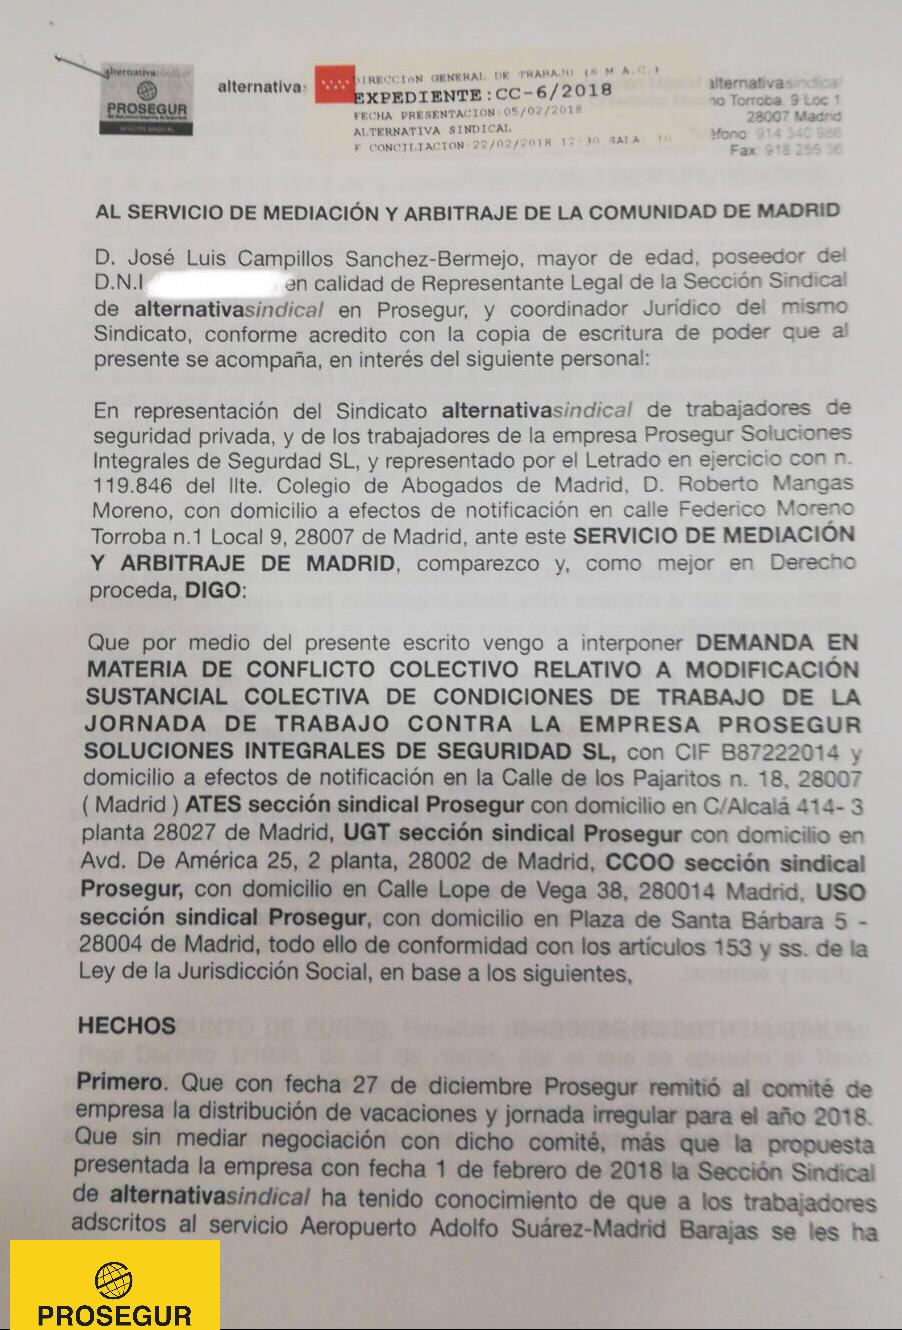 LA SECCIÓN SINDICAL DE ALTERNATIVASINDICAL INTERPONE CONFLICTO ...